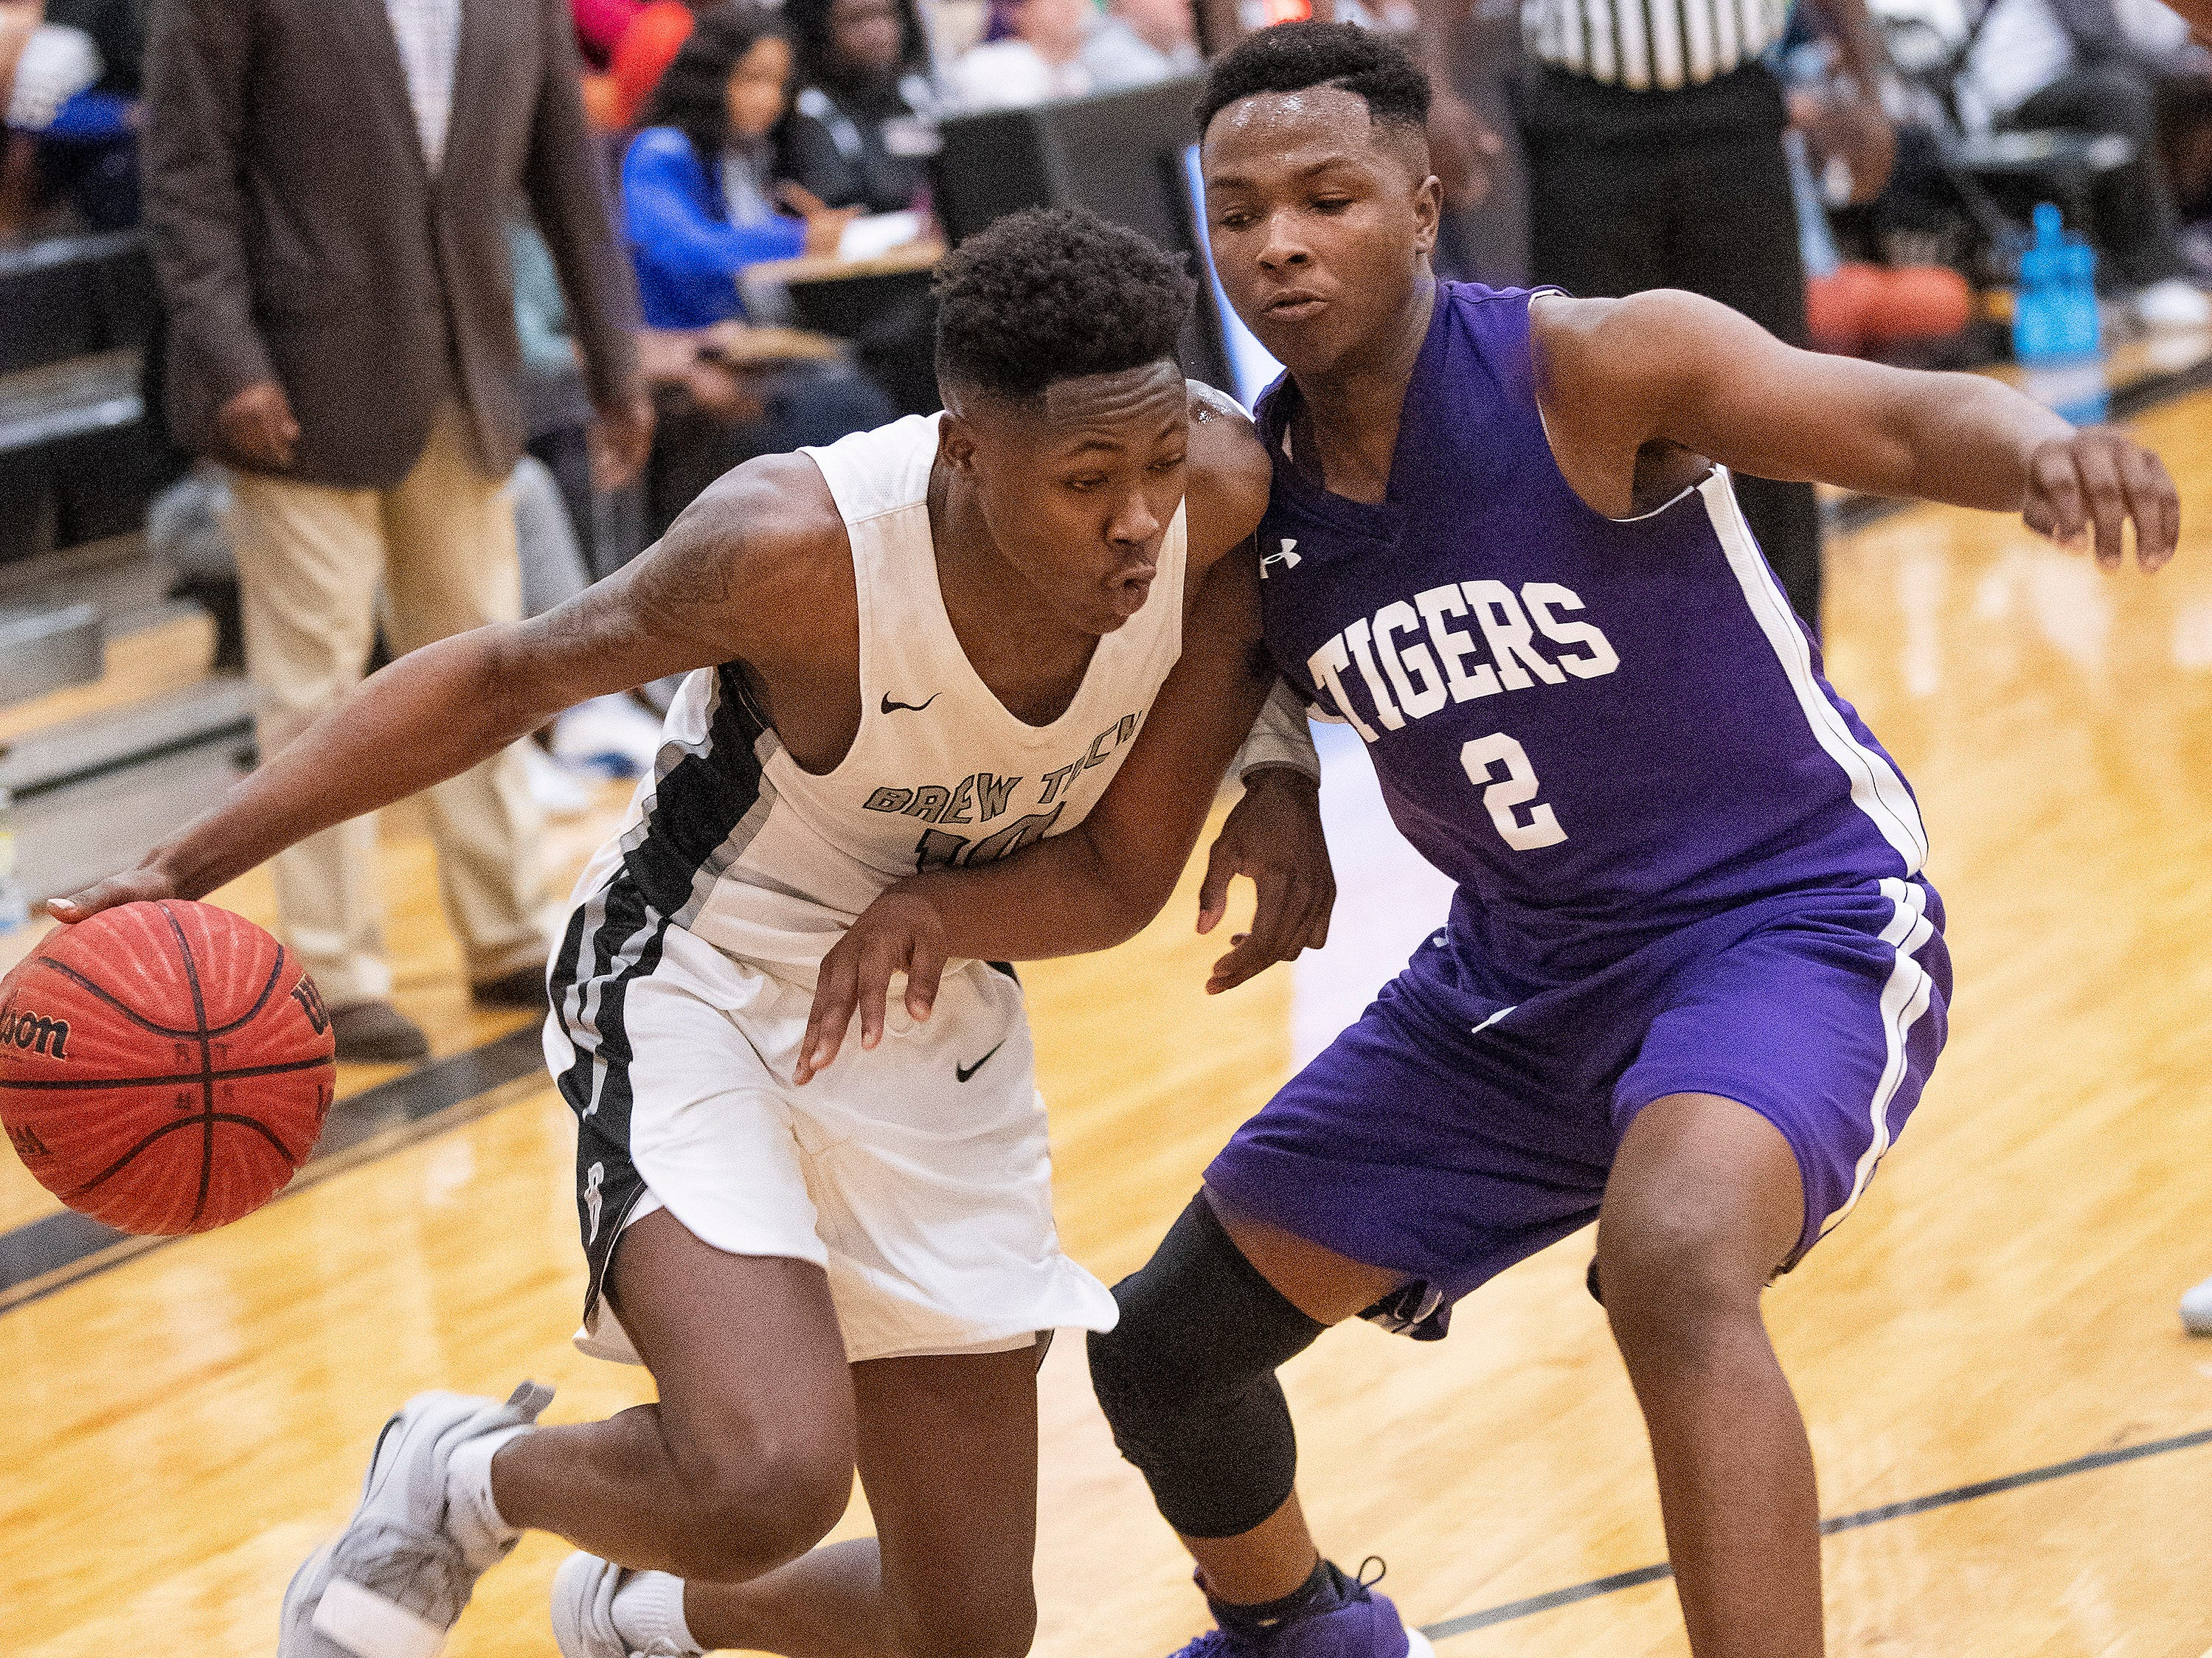 Brewbaker Tech's Desmond Williams (10) against Tallassee's Sandarius Hughley (2) at the BrewTech campus in Montgomery, Ala., on Thursday February 7, 2019.